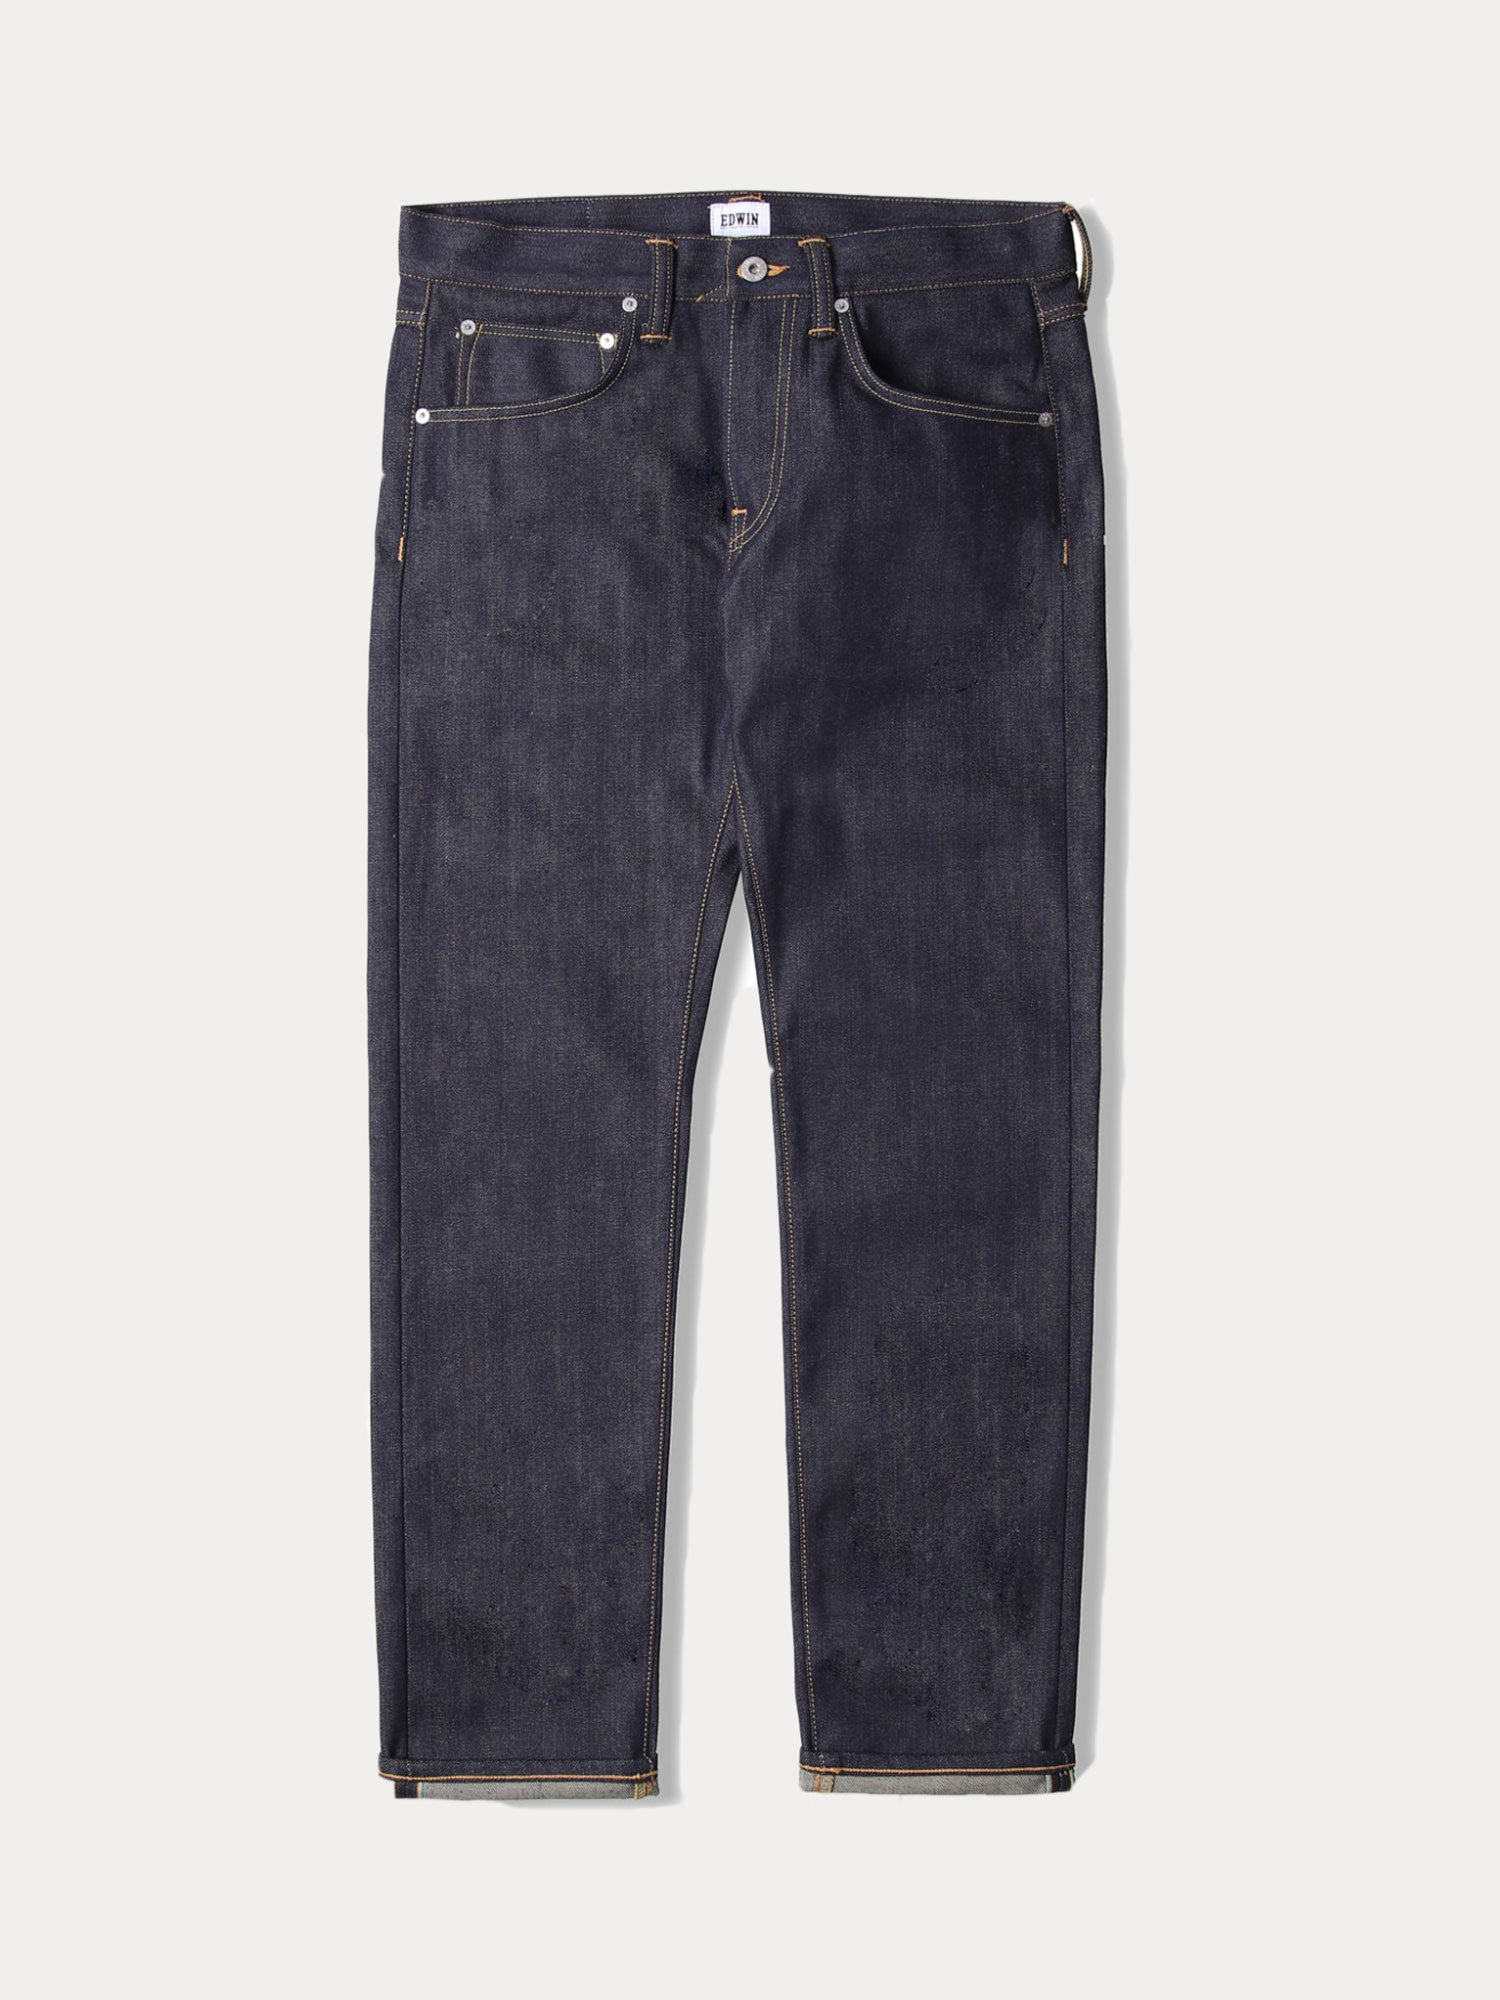 Edwin ED-55 12.8oz Rainbow Selvage Jeans (Unwashed)